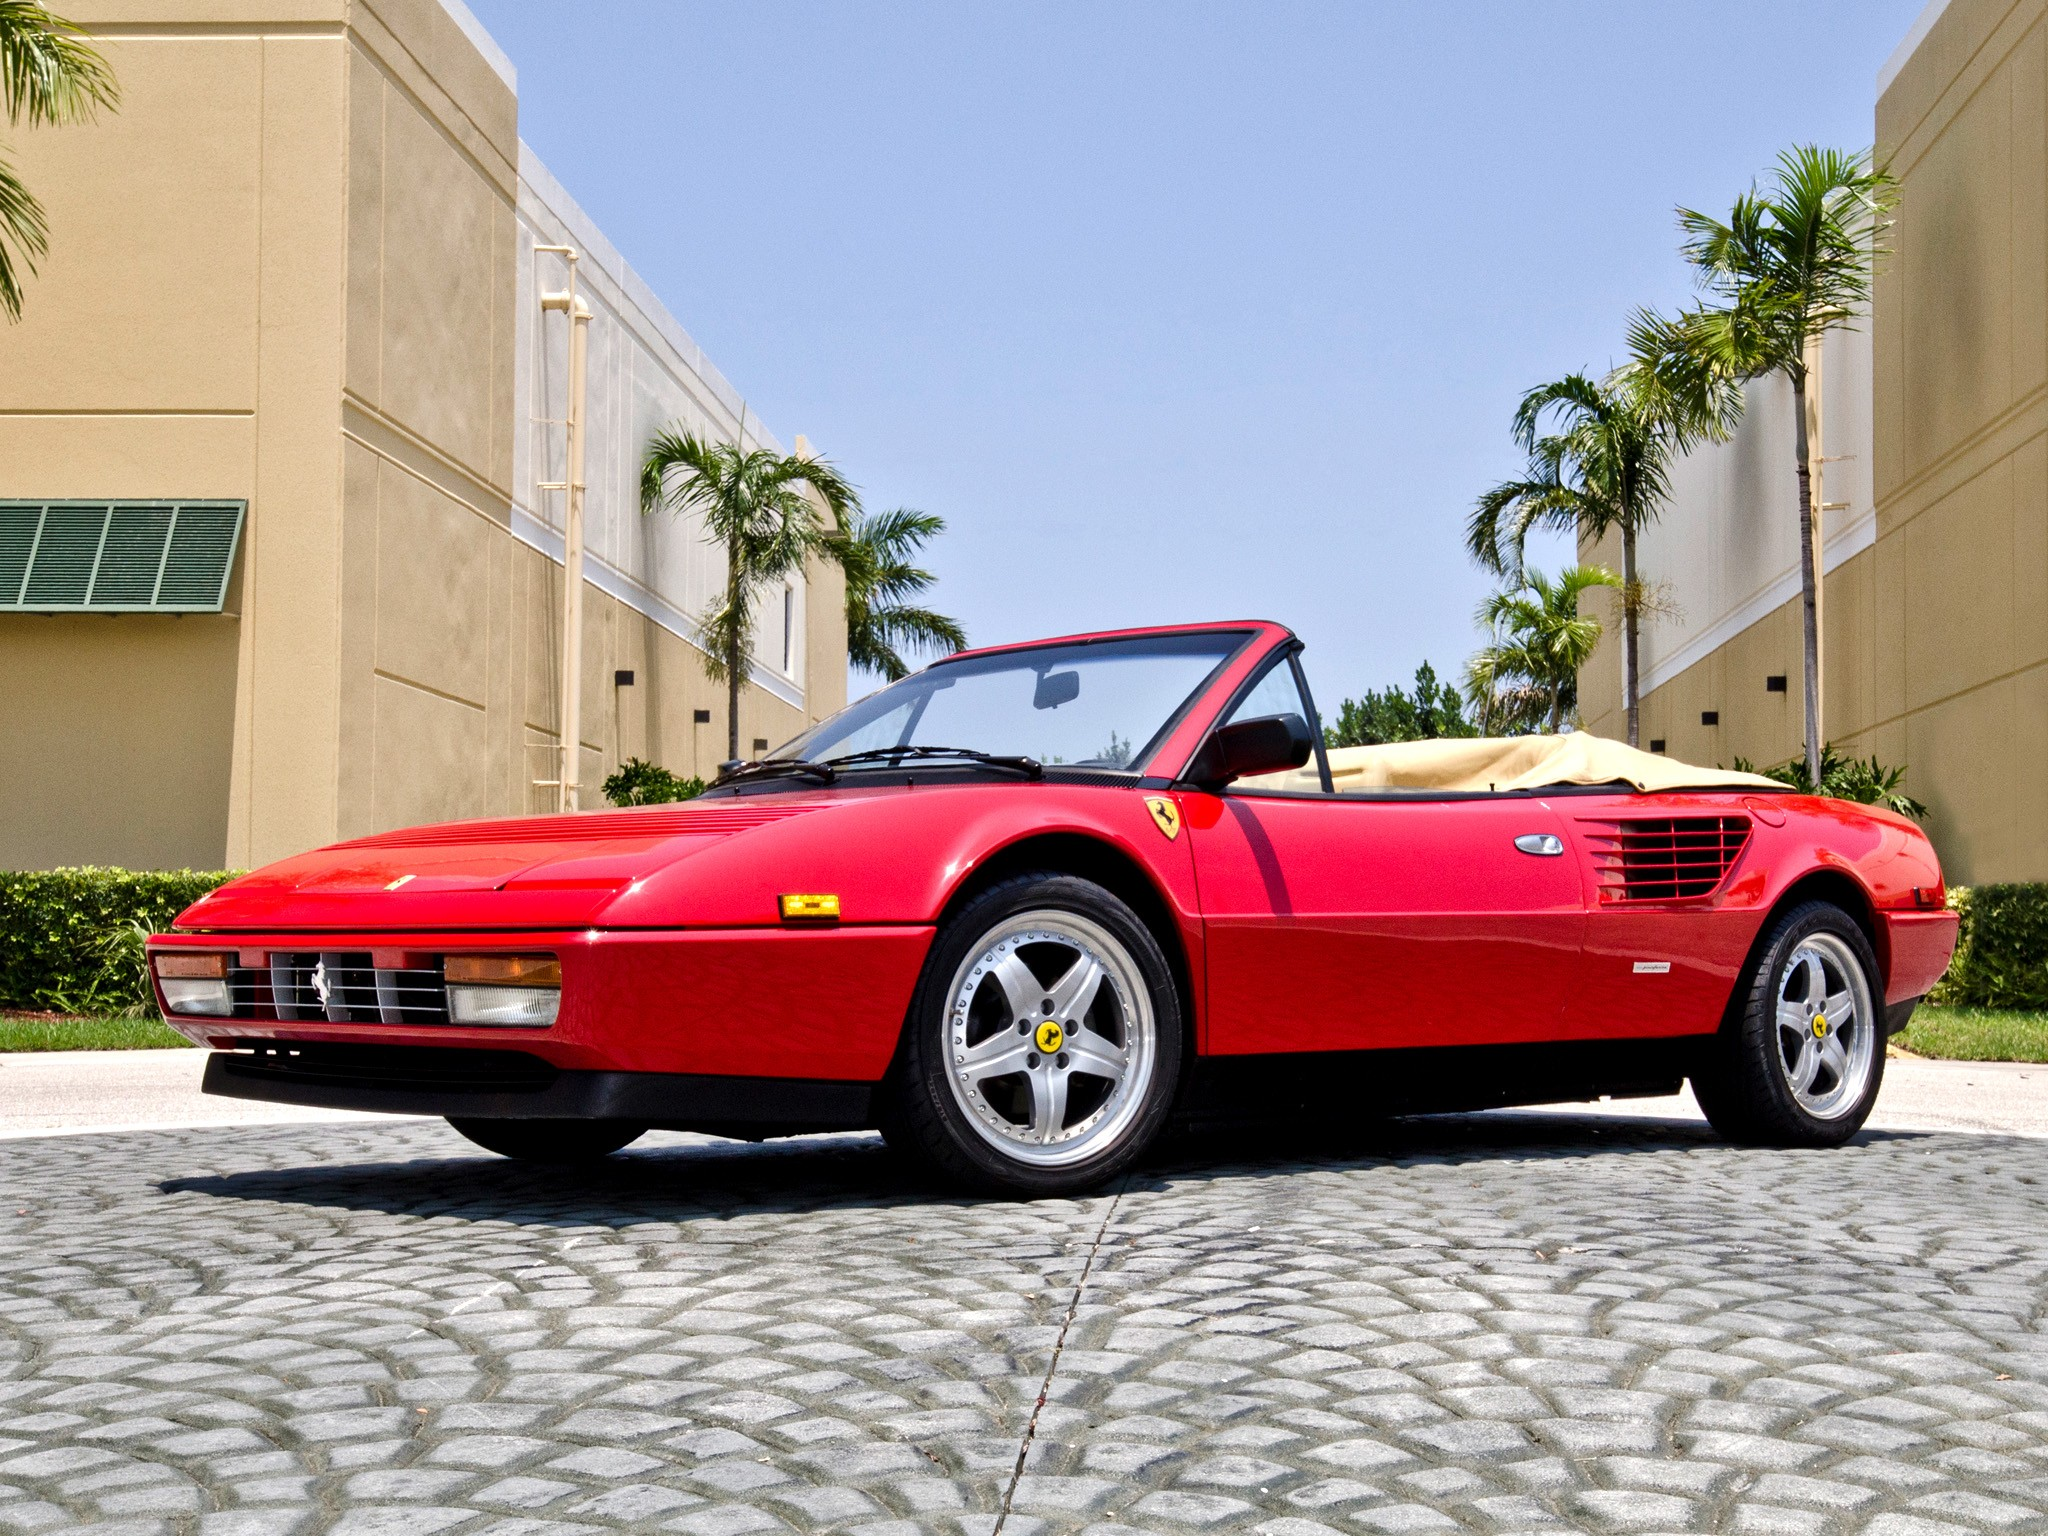 ferrari mondial 3 2 cabriolet specs 1985 1986 1987 1988 autoevolution. Black Bedroom Furniture Sets. Home Design Ideas